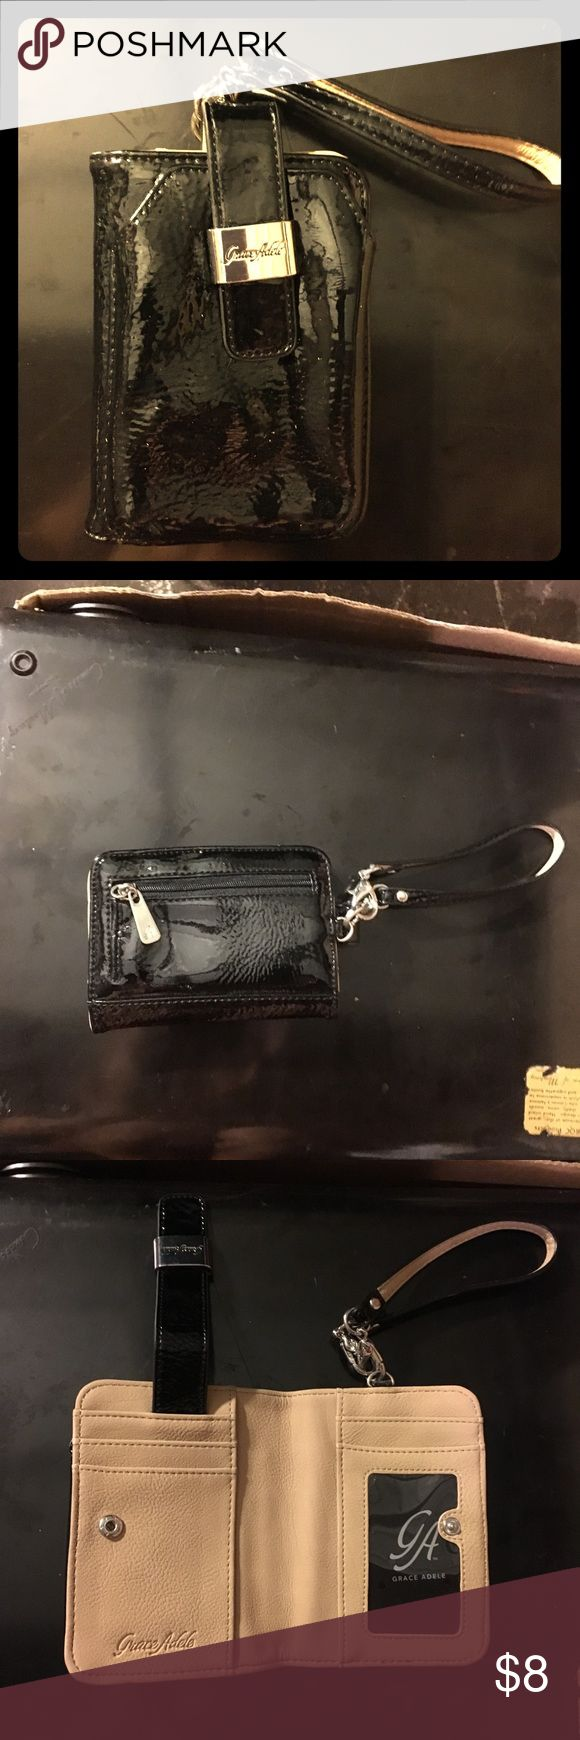 Grace Adele wallet cell phone wristlet Patent leather wallet/clutch Grace Adele Bags Clutches & Wristlets